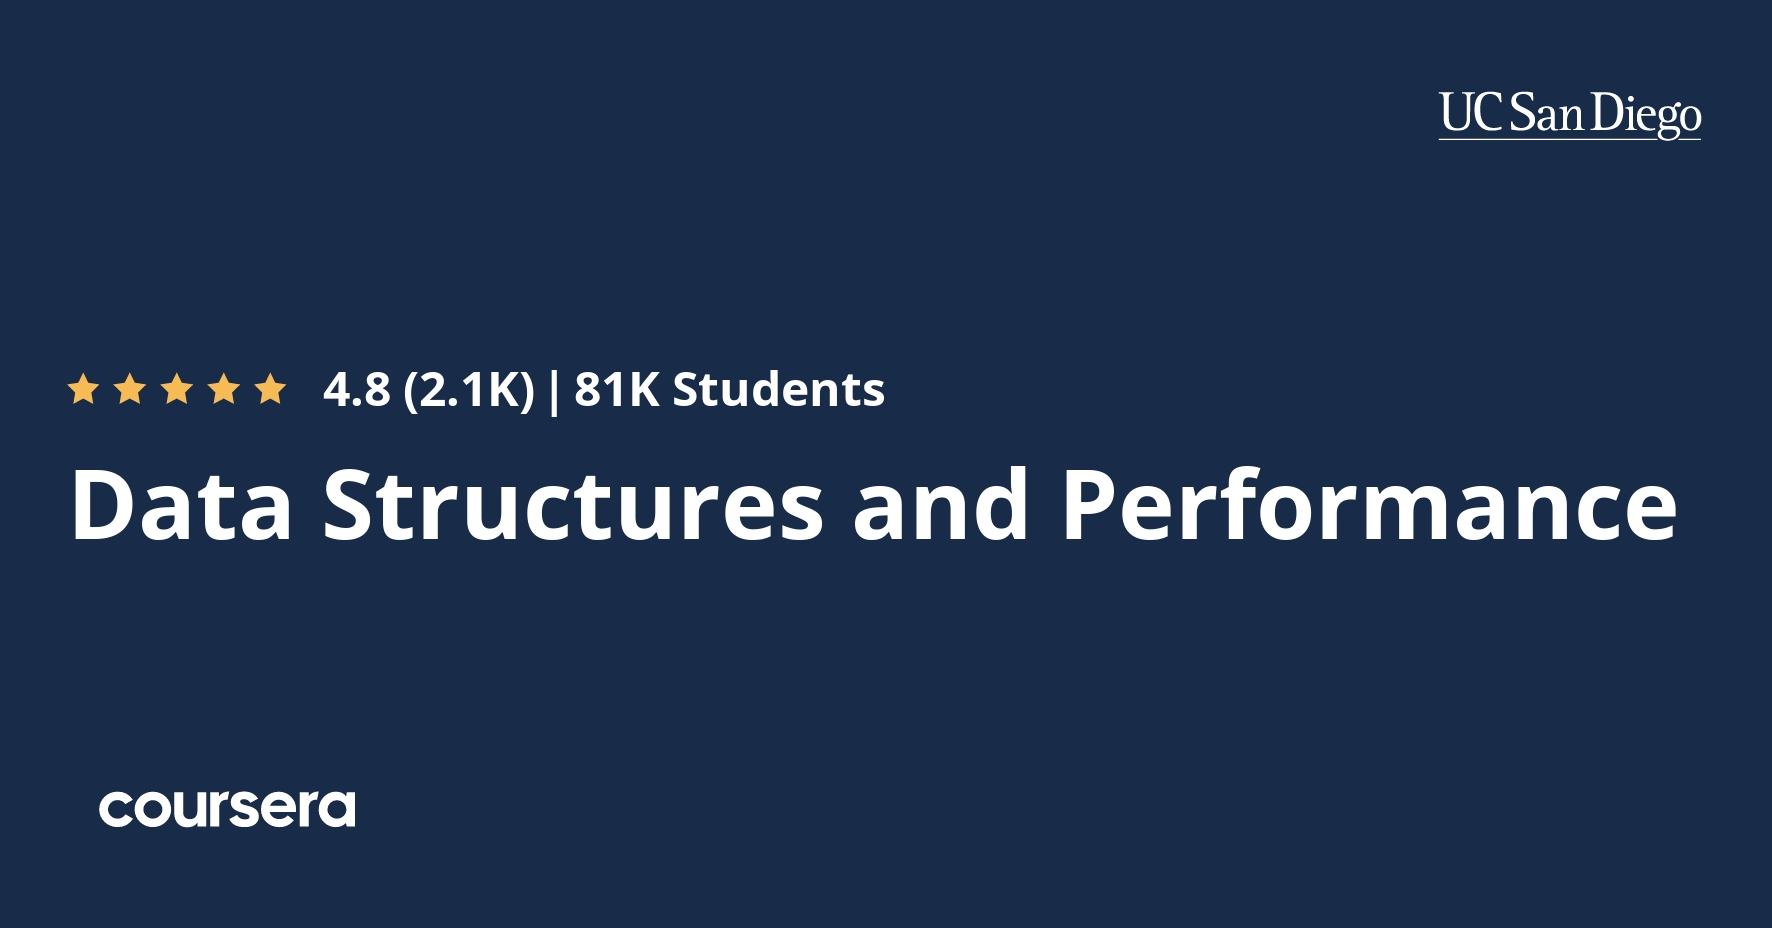 Data Structures and Performance